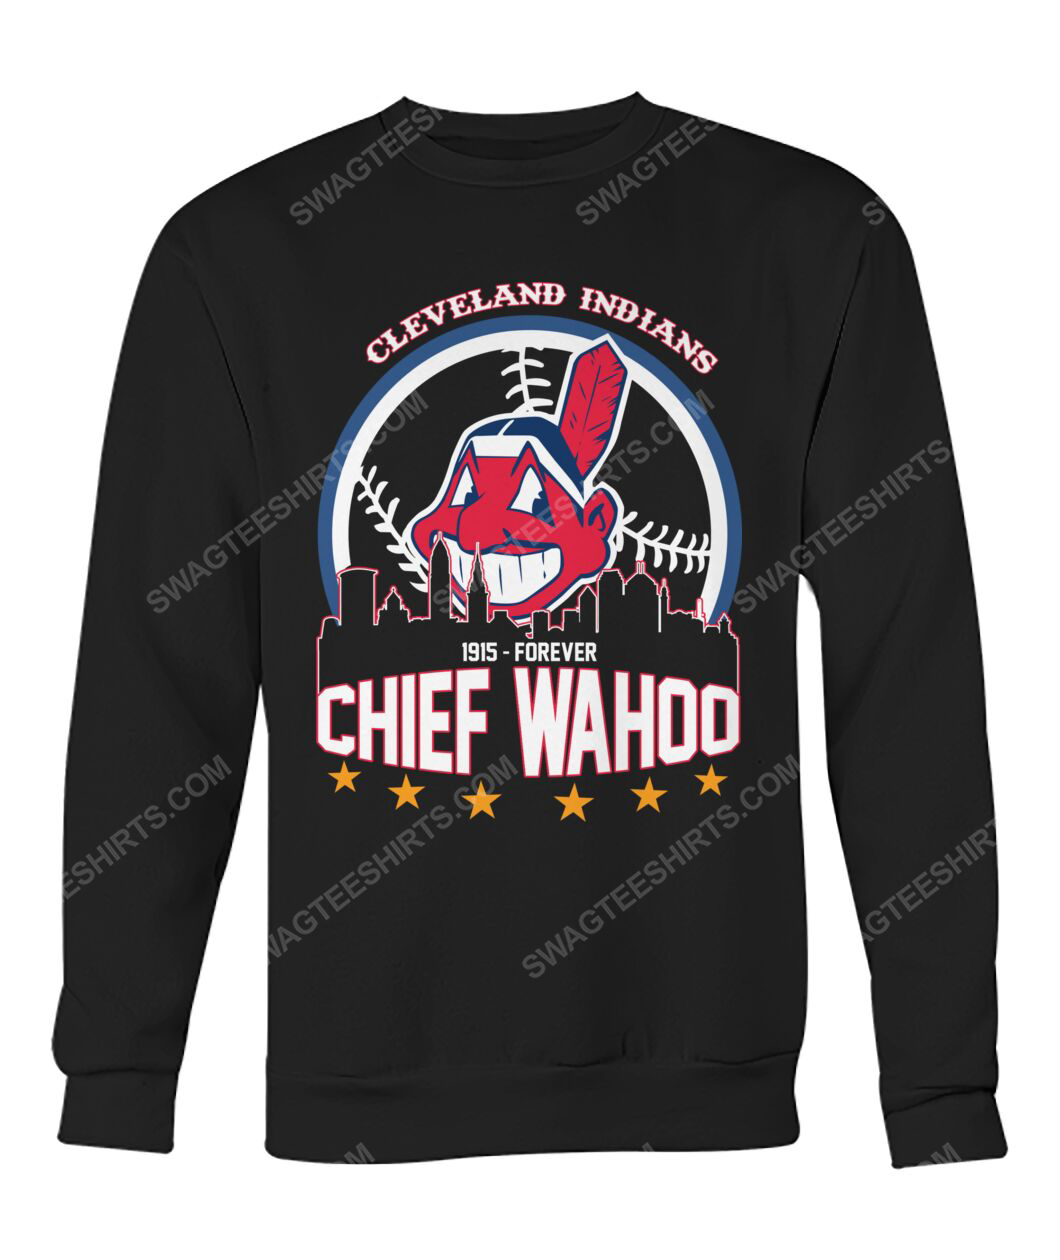 The cleveland indians 1915 forever chief wahoo sweatshirt 1